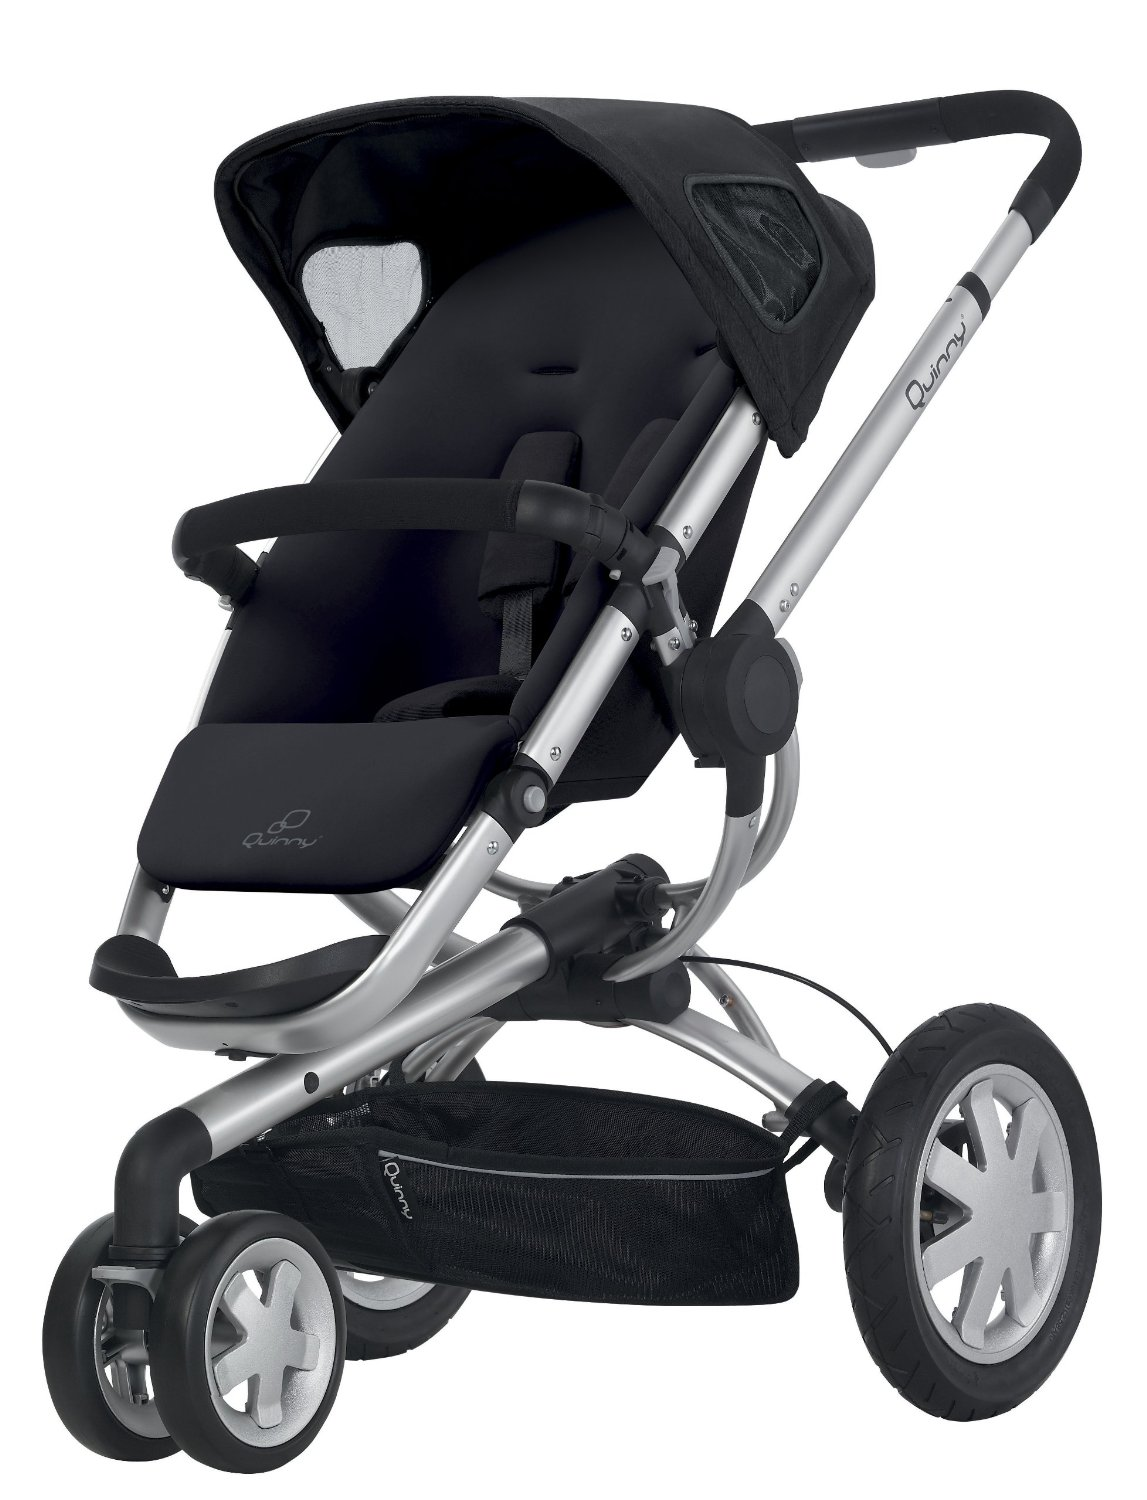 What Are The Best European Baby Strollers